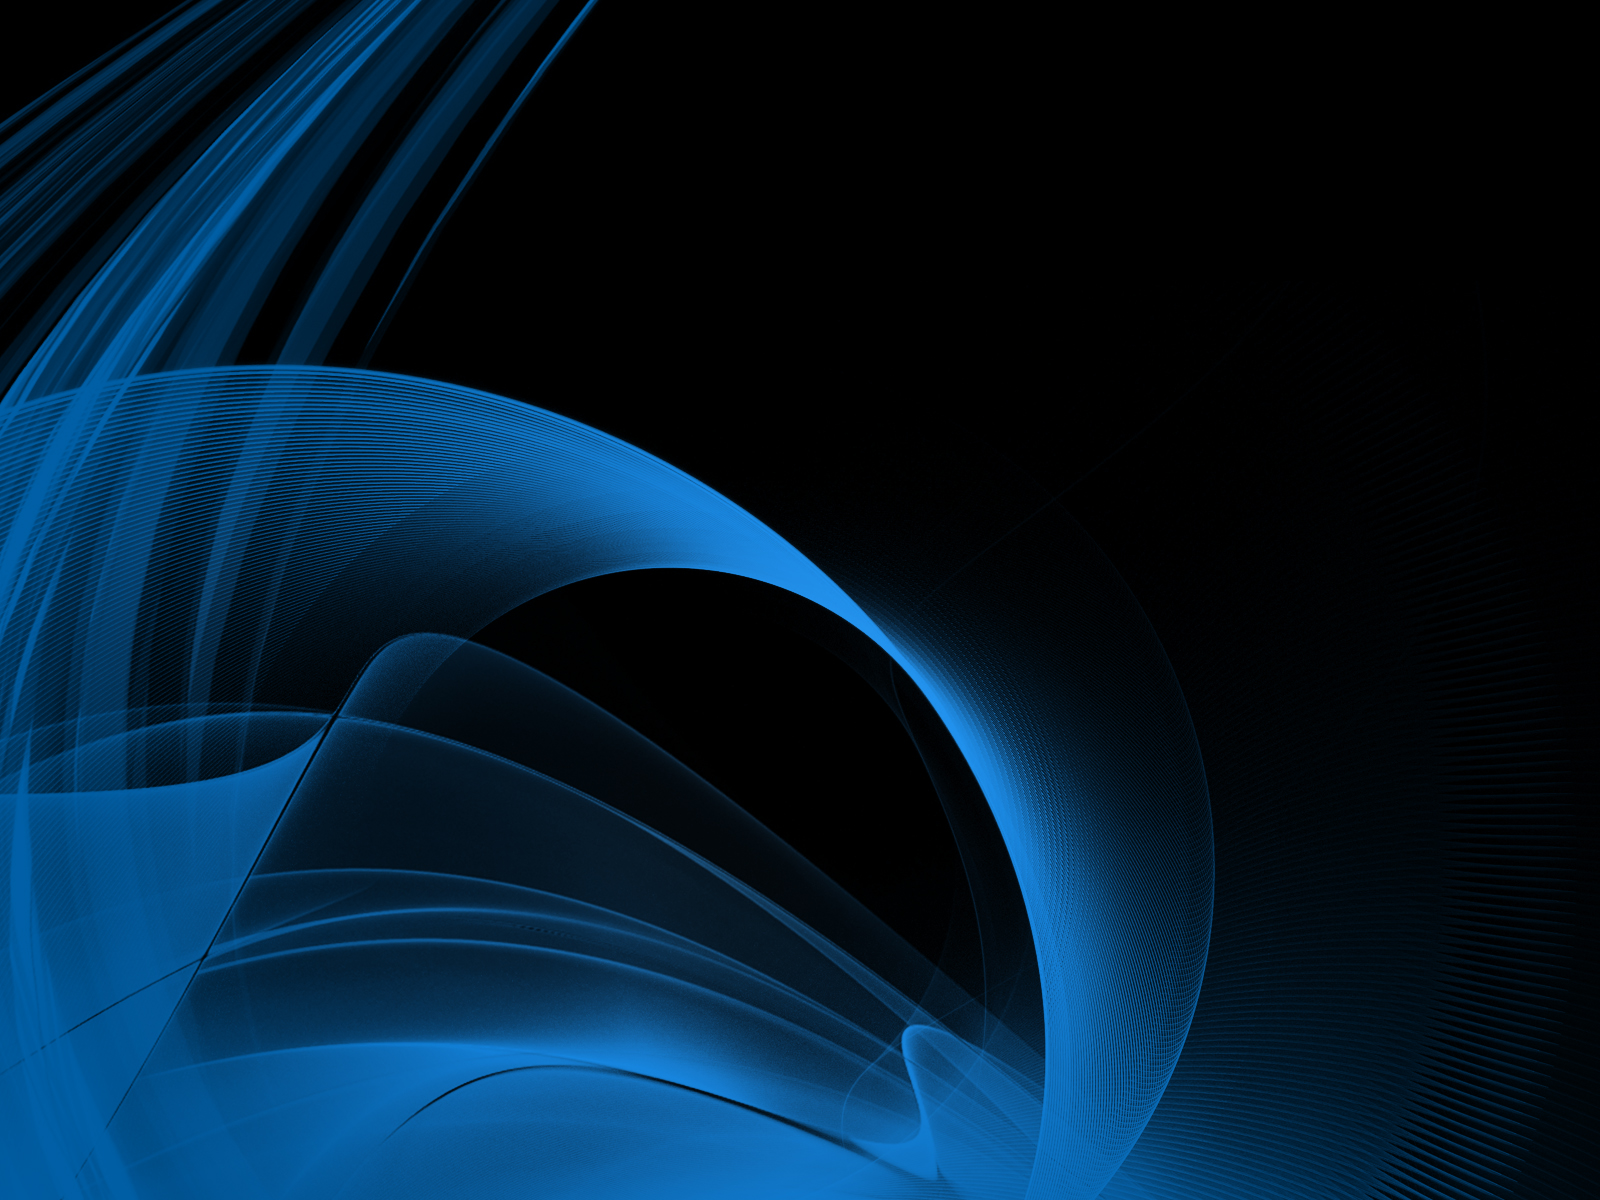 Black and blue abstract wallpaper 16 wide wallpaper - Black abstract background ...